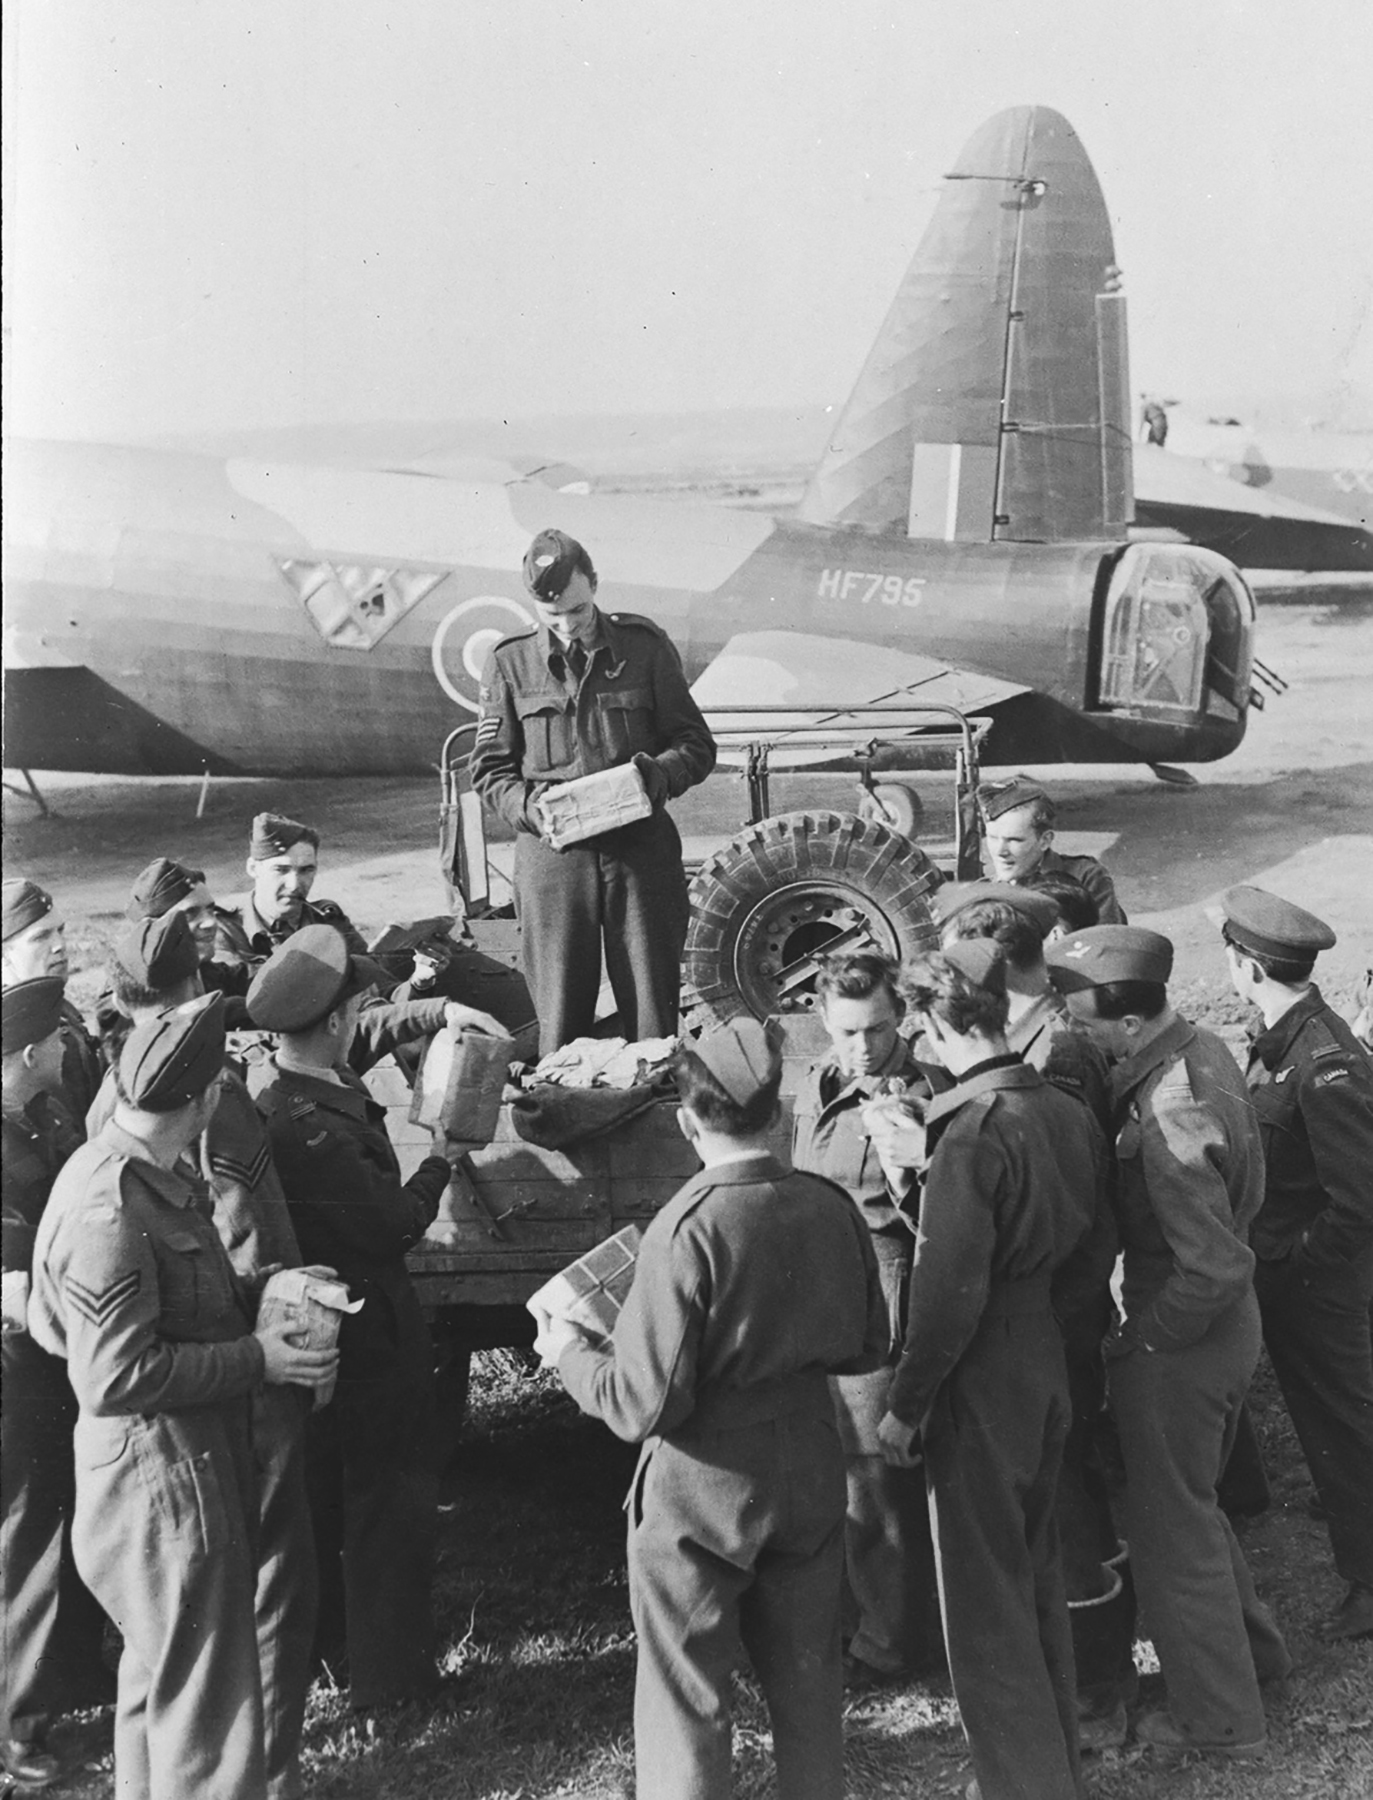 RCAF aircrew and groundcrew cluster around a truck at a North African airfield to get their Christmas mail and parcels that have been flown from Canada to North Africa via the UK by Flying Fortresses of the RCAF Air Transport Command. PHOTO: DND Archives, PL-18693